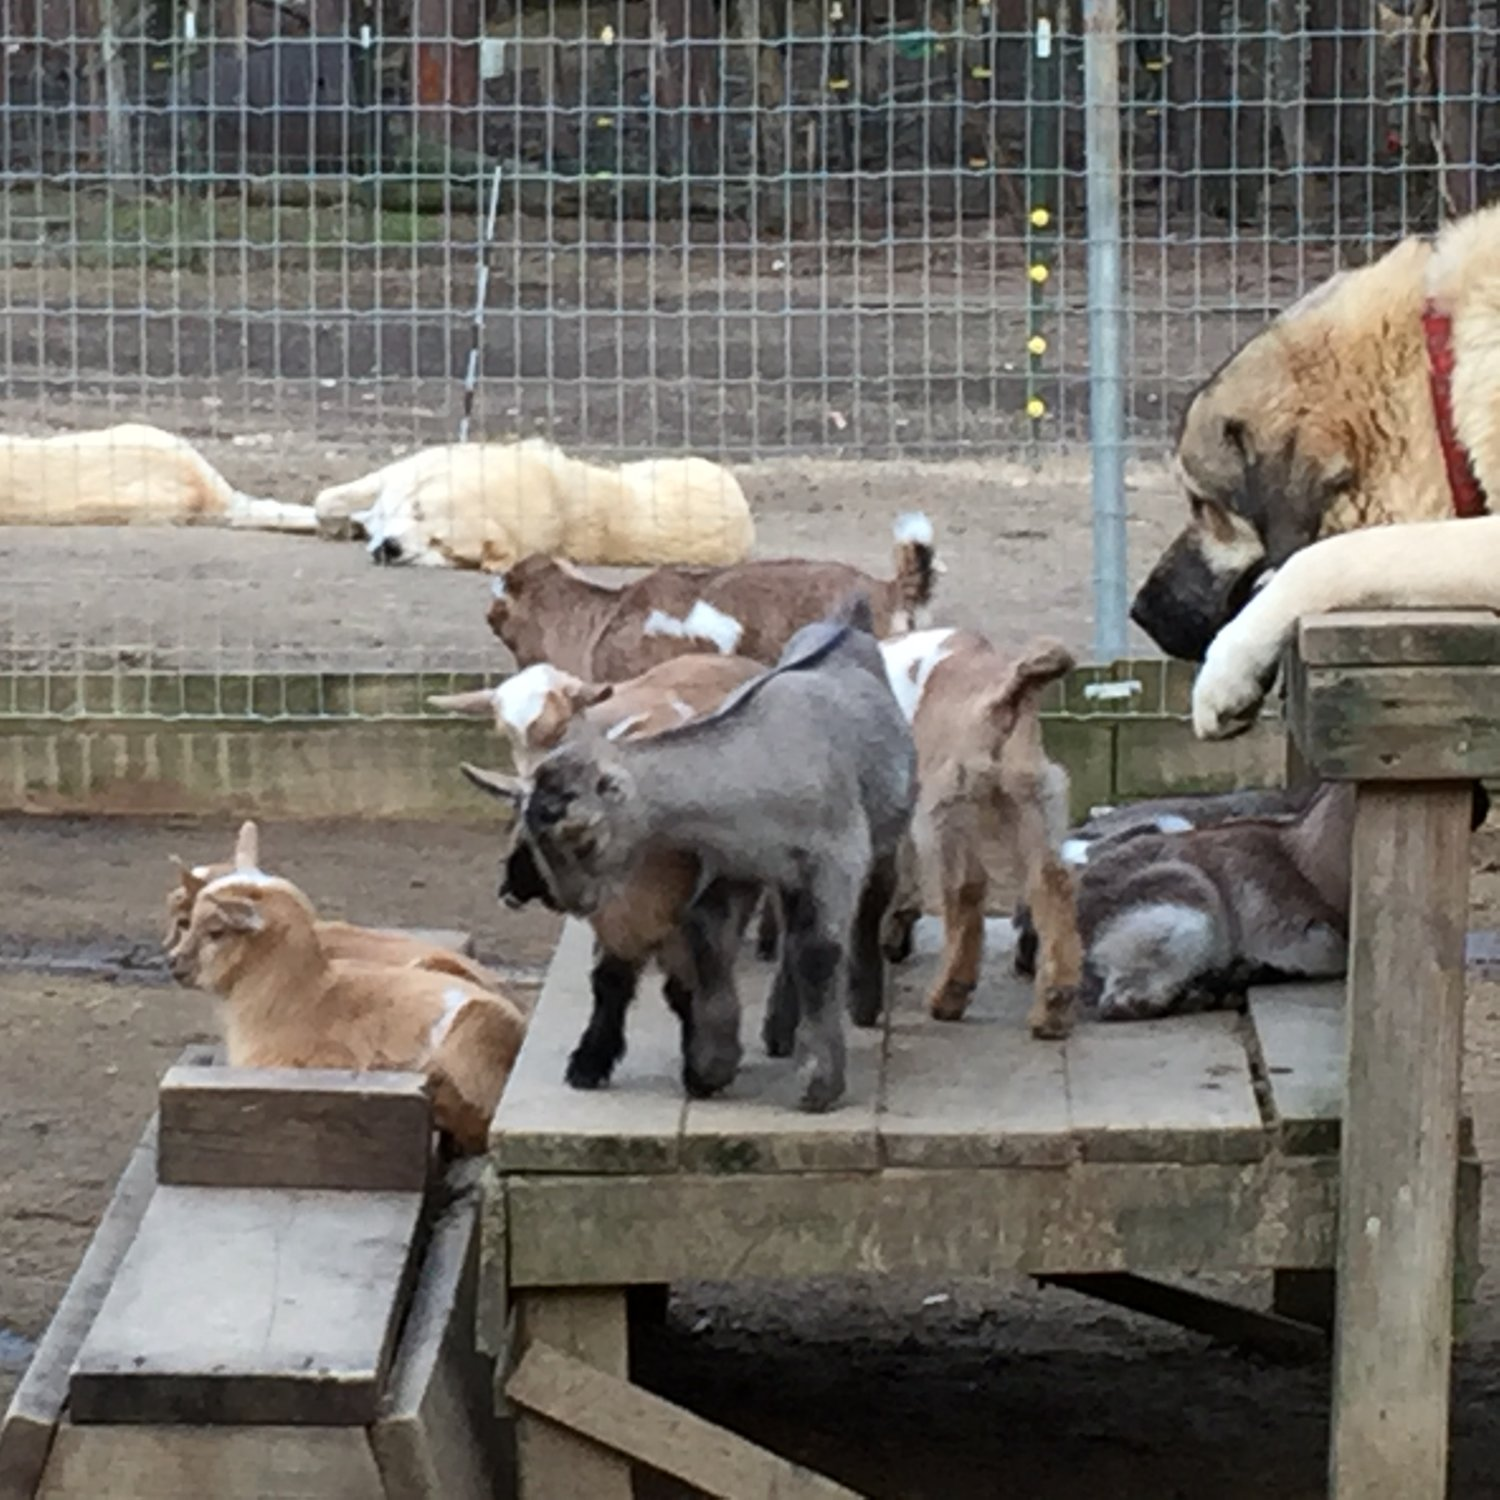 Wingin' it Farms Livestock Guardian Dogs 12 months with new kids 044.JPG